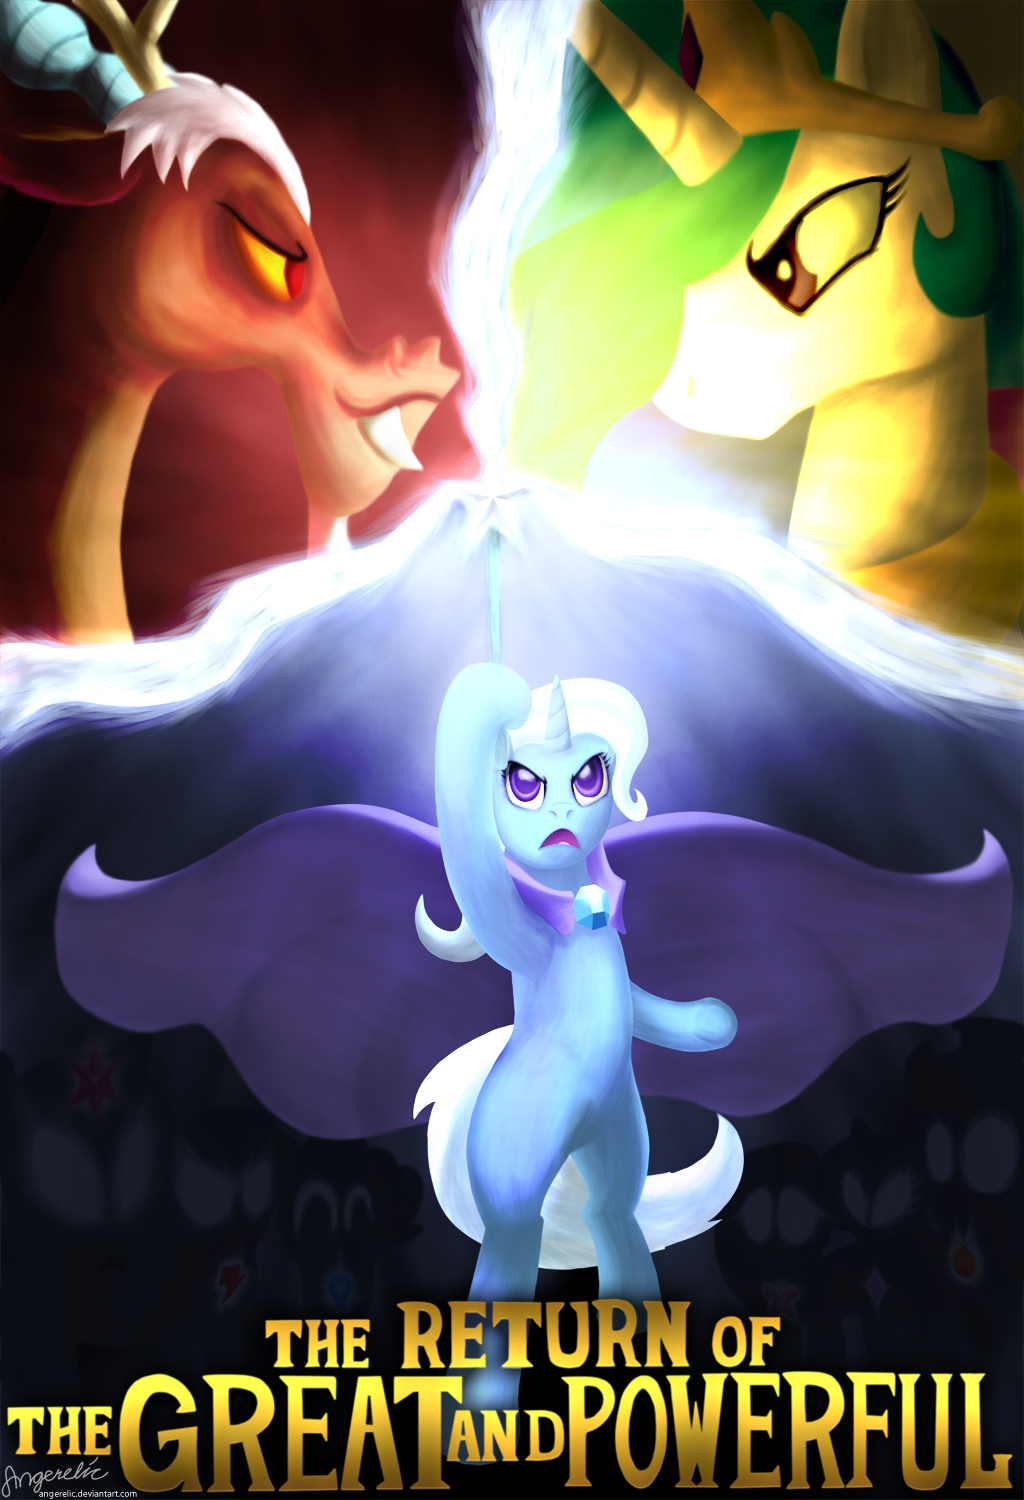 The Return of the Great and Powerful by Angerelic